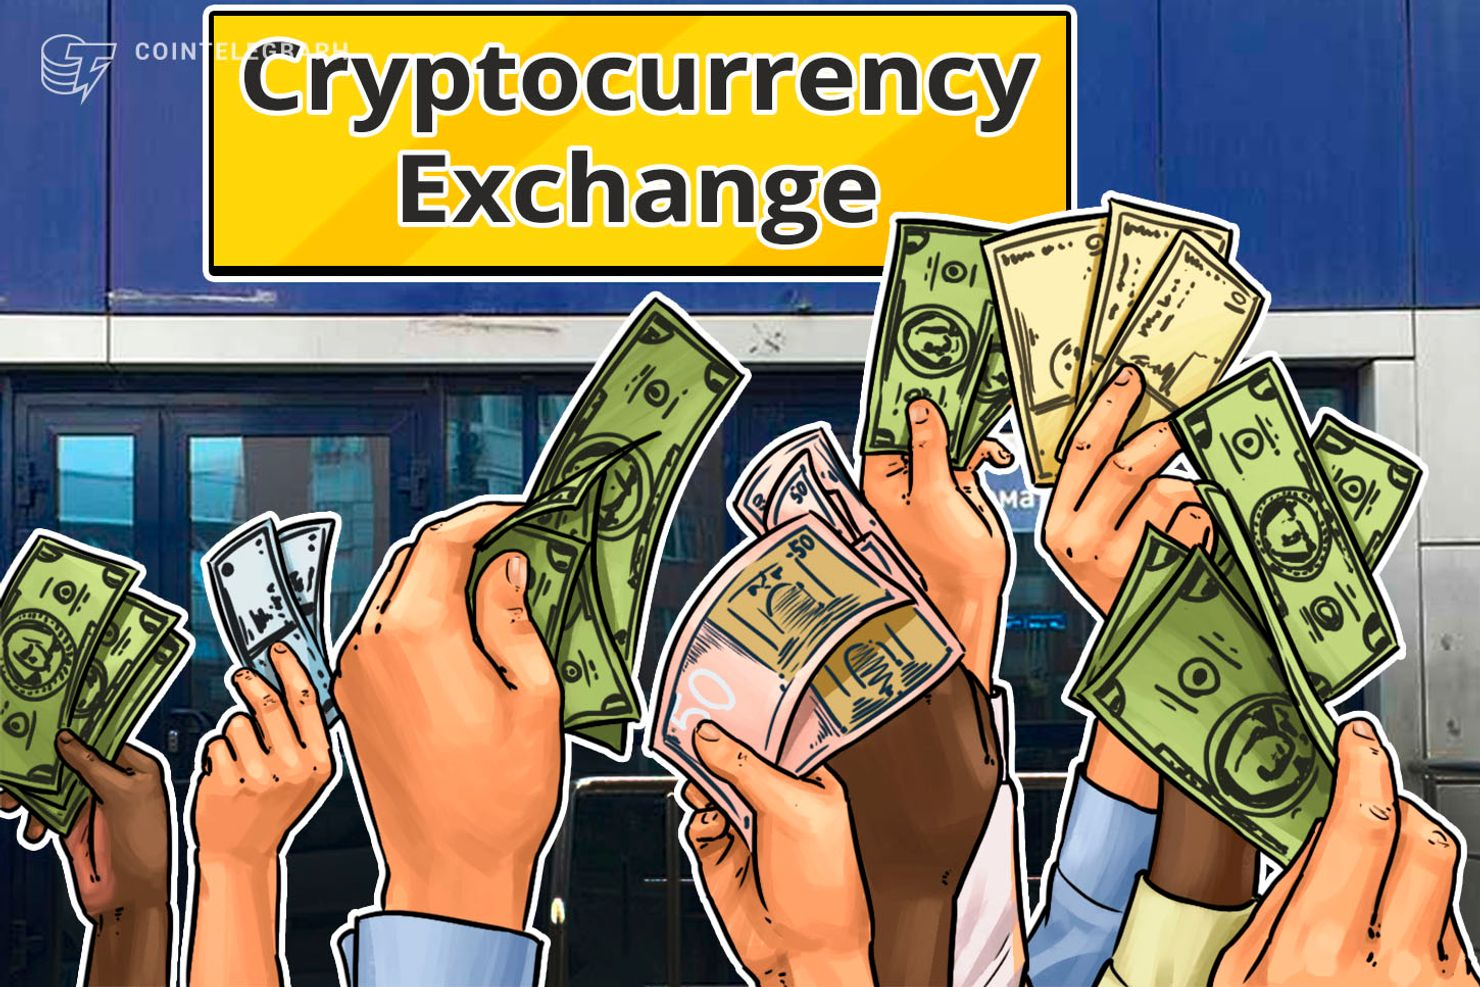 Jamaica Stock Exchange to Introduce Crypto and Tokens Trading via Canadian Fintech Firm